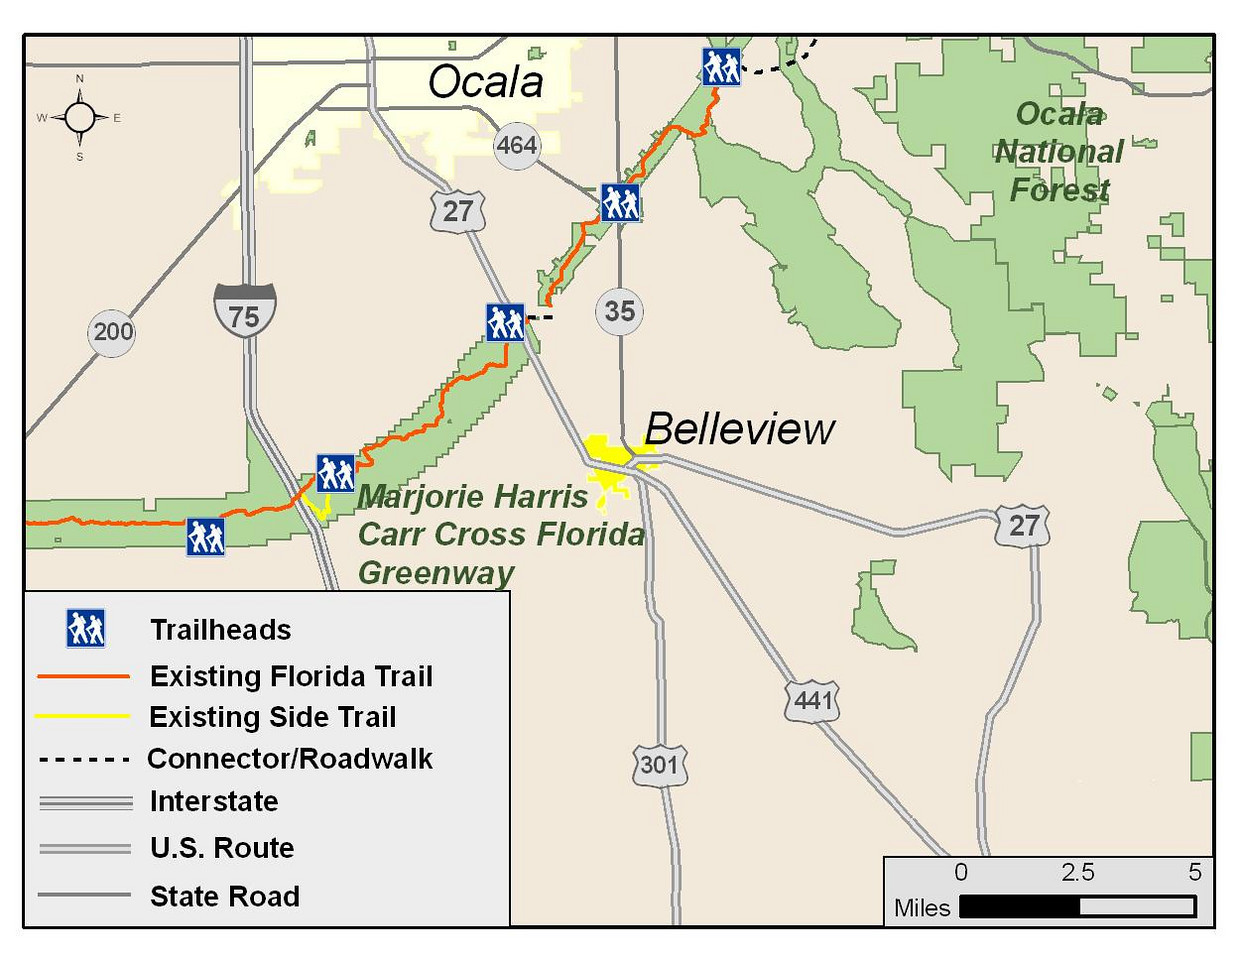 A map of the Florida Trail in relation to Belleview.